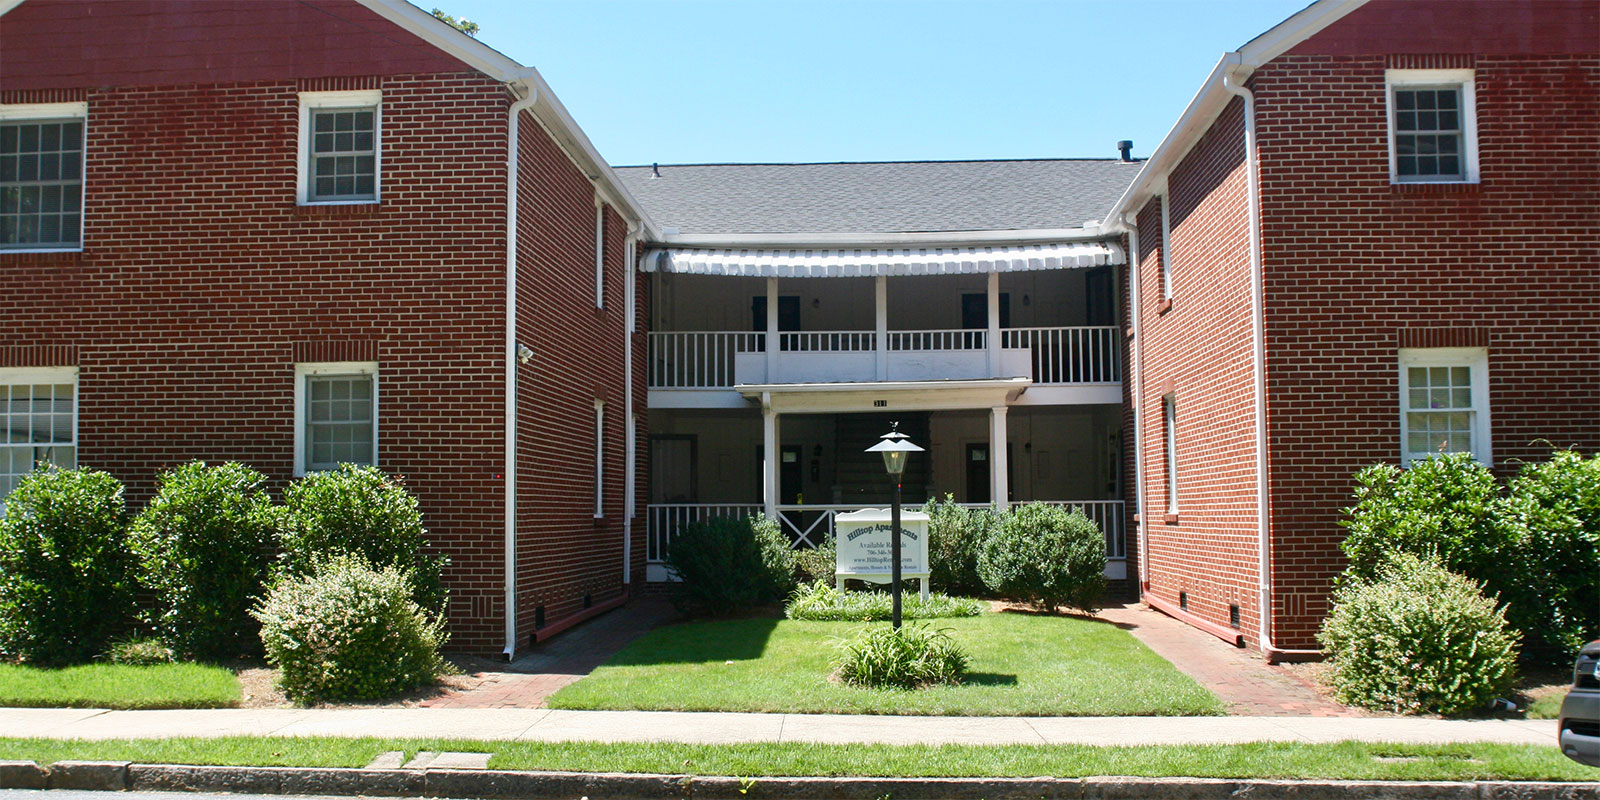 311-1 East 3rd Street, Rome, Georgia 30161, 2 Bedrooms Bedrooms, ,1 BathroomBathrooms,Apartment,Rental,East 3rd Street,1009